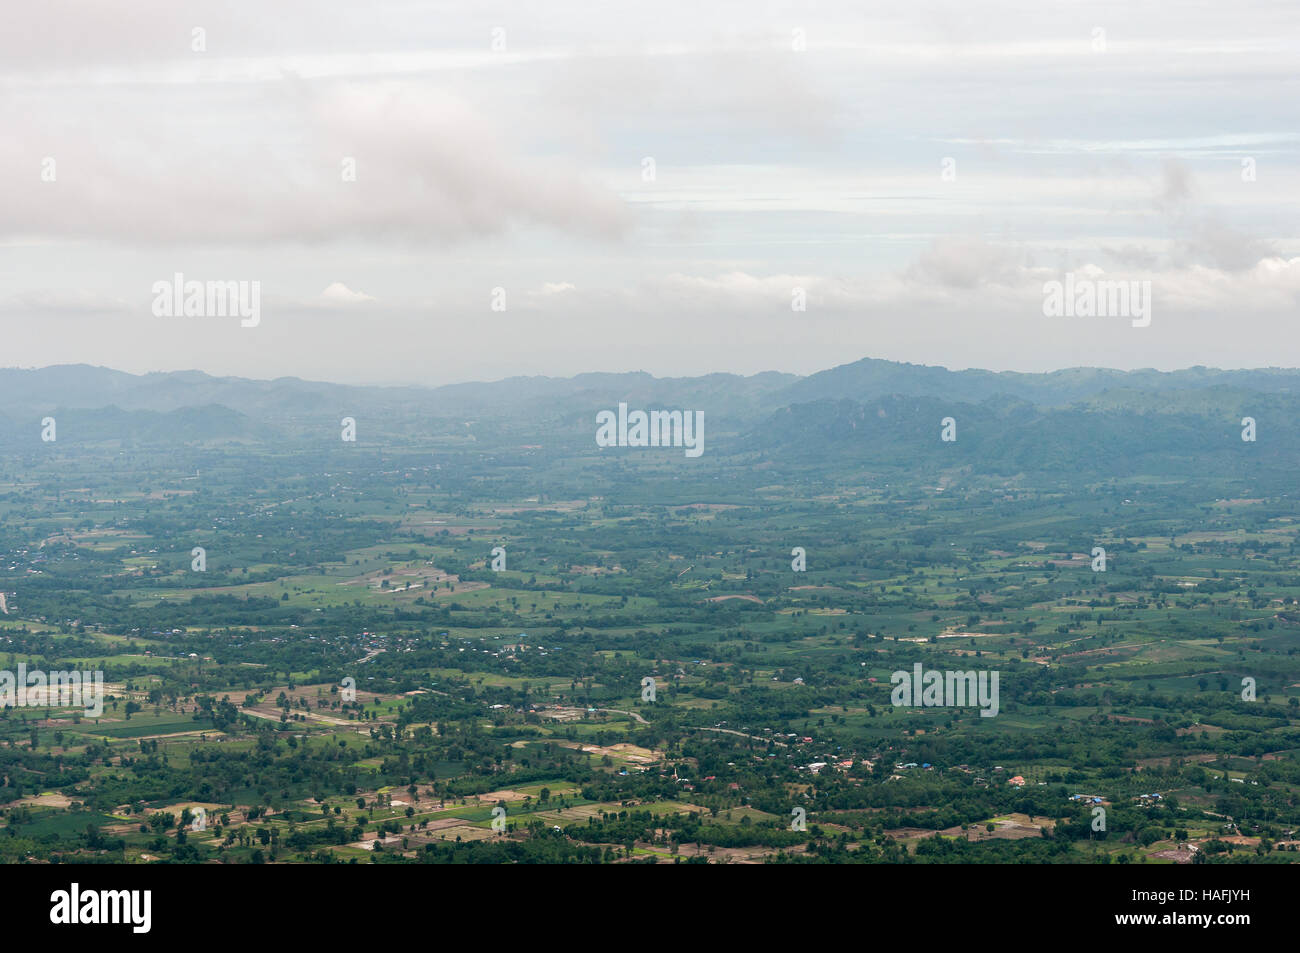 Bird eye view scene from the high mountain with light mist in the early morning. - Stock Image